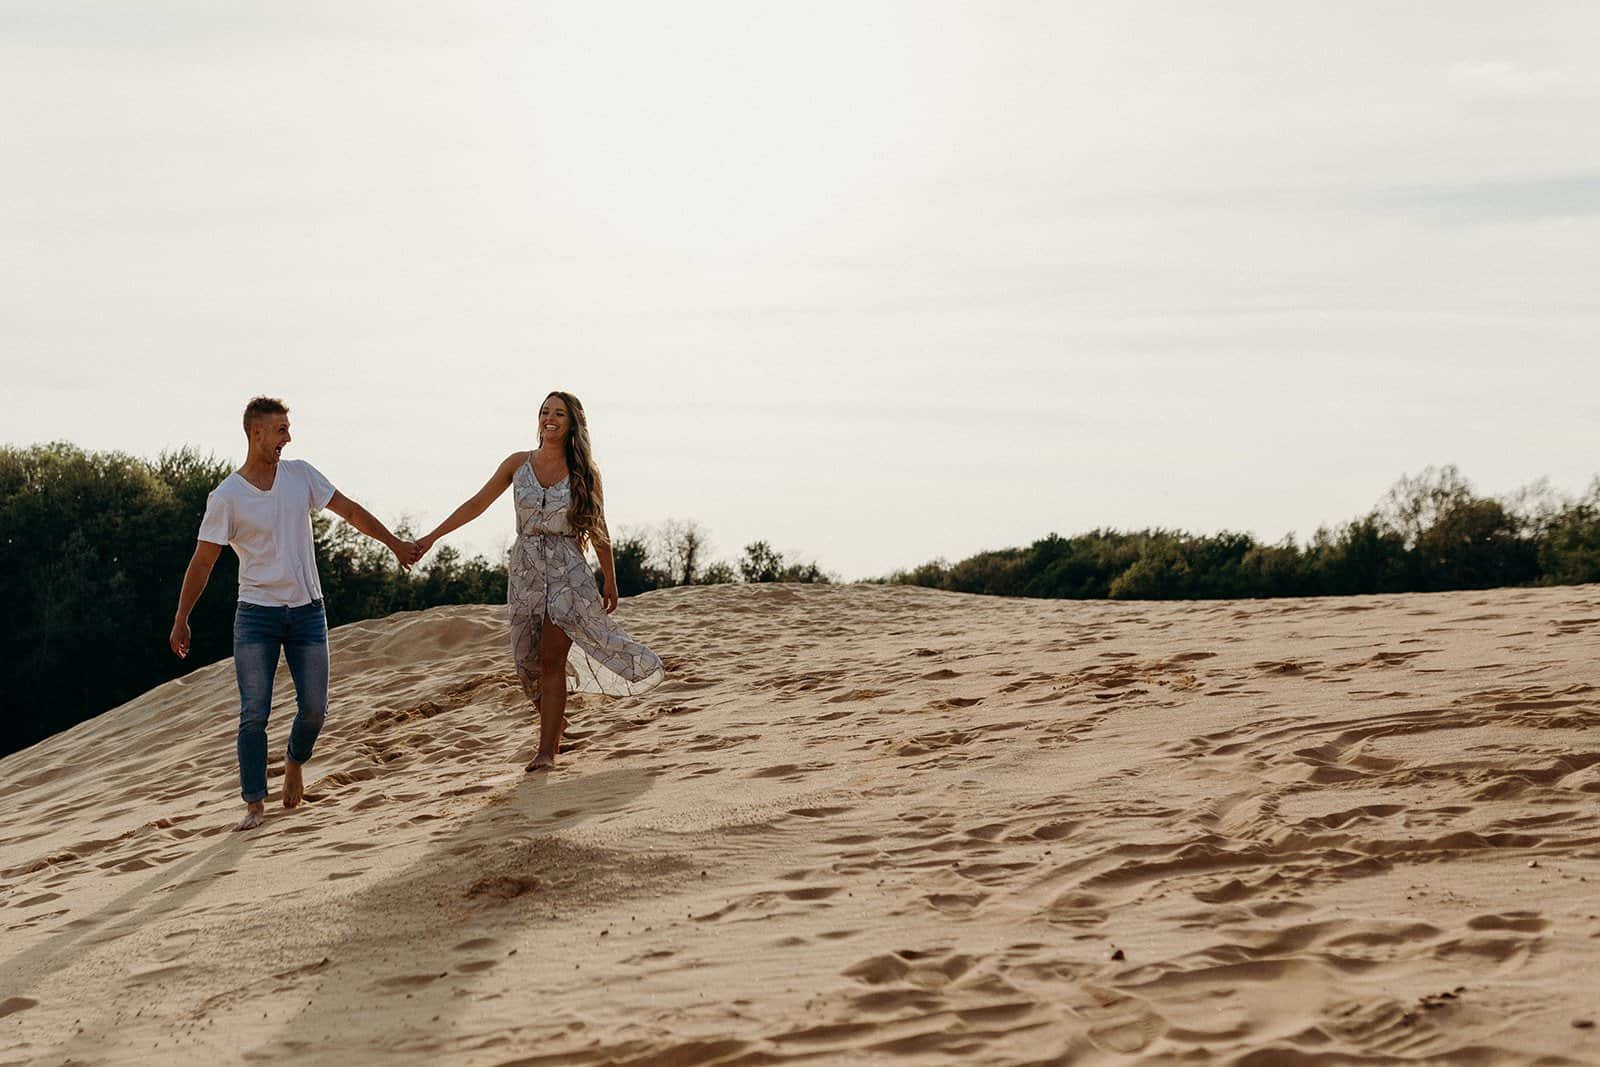 Ohio Sand Dunes Engagement | Addison + Morgan 149